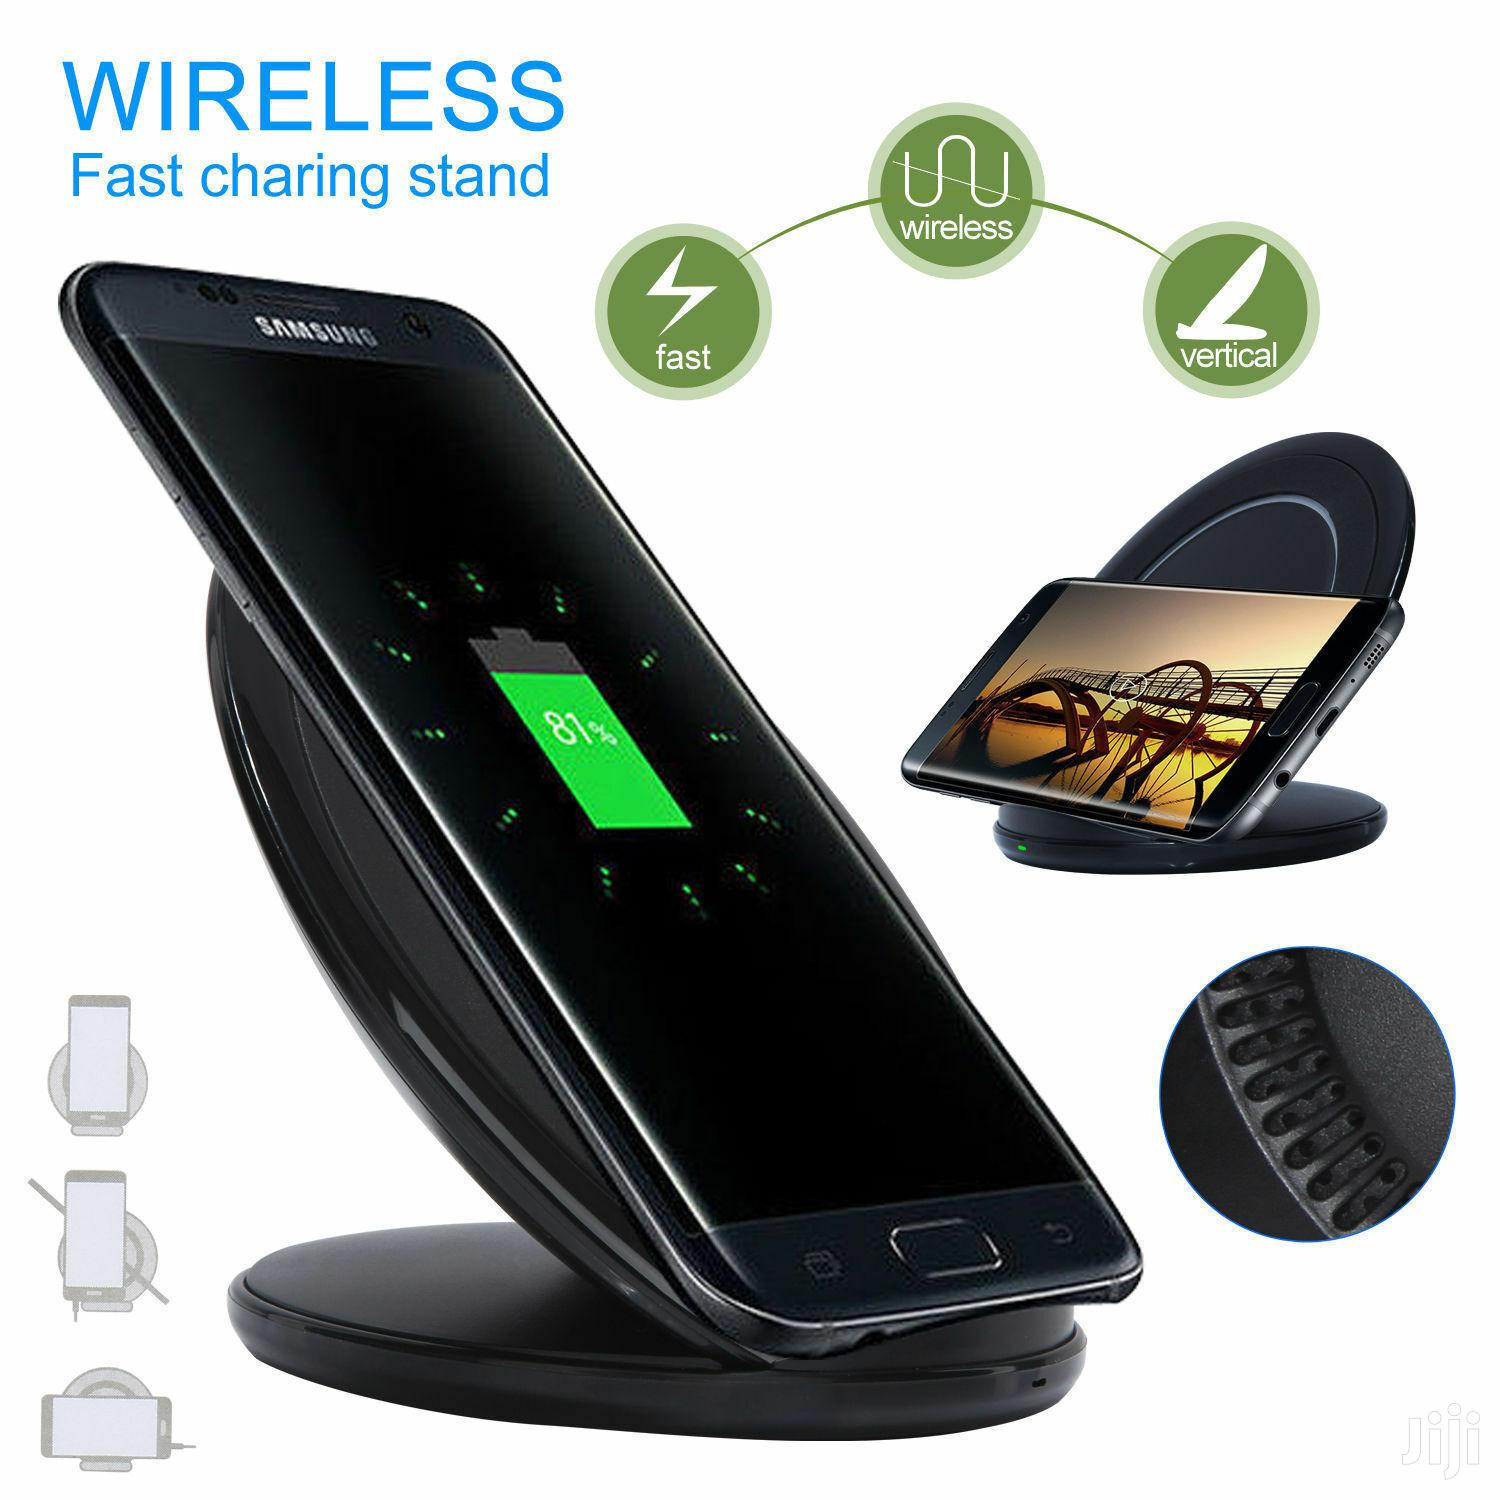 Samsung Wireless Fast Charger Pad | Accessories for Mobile Phones & Tablets for sale in Achimota, Greater Accra, Ghana